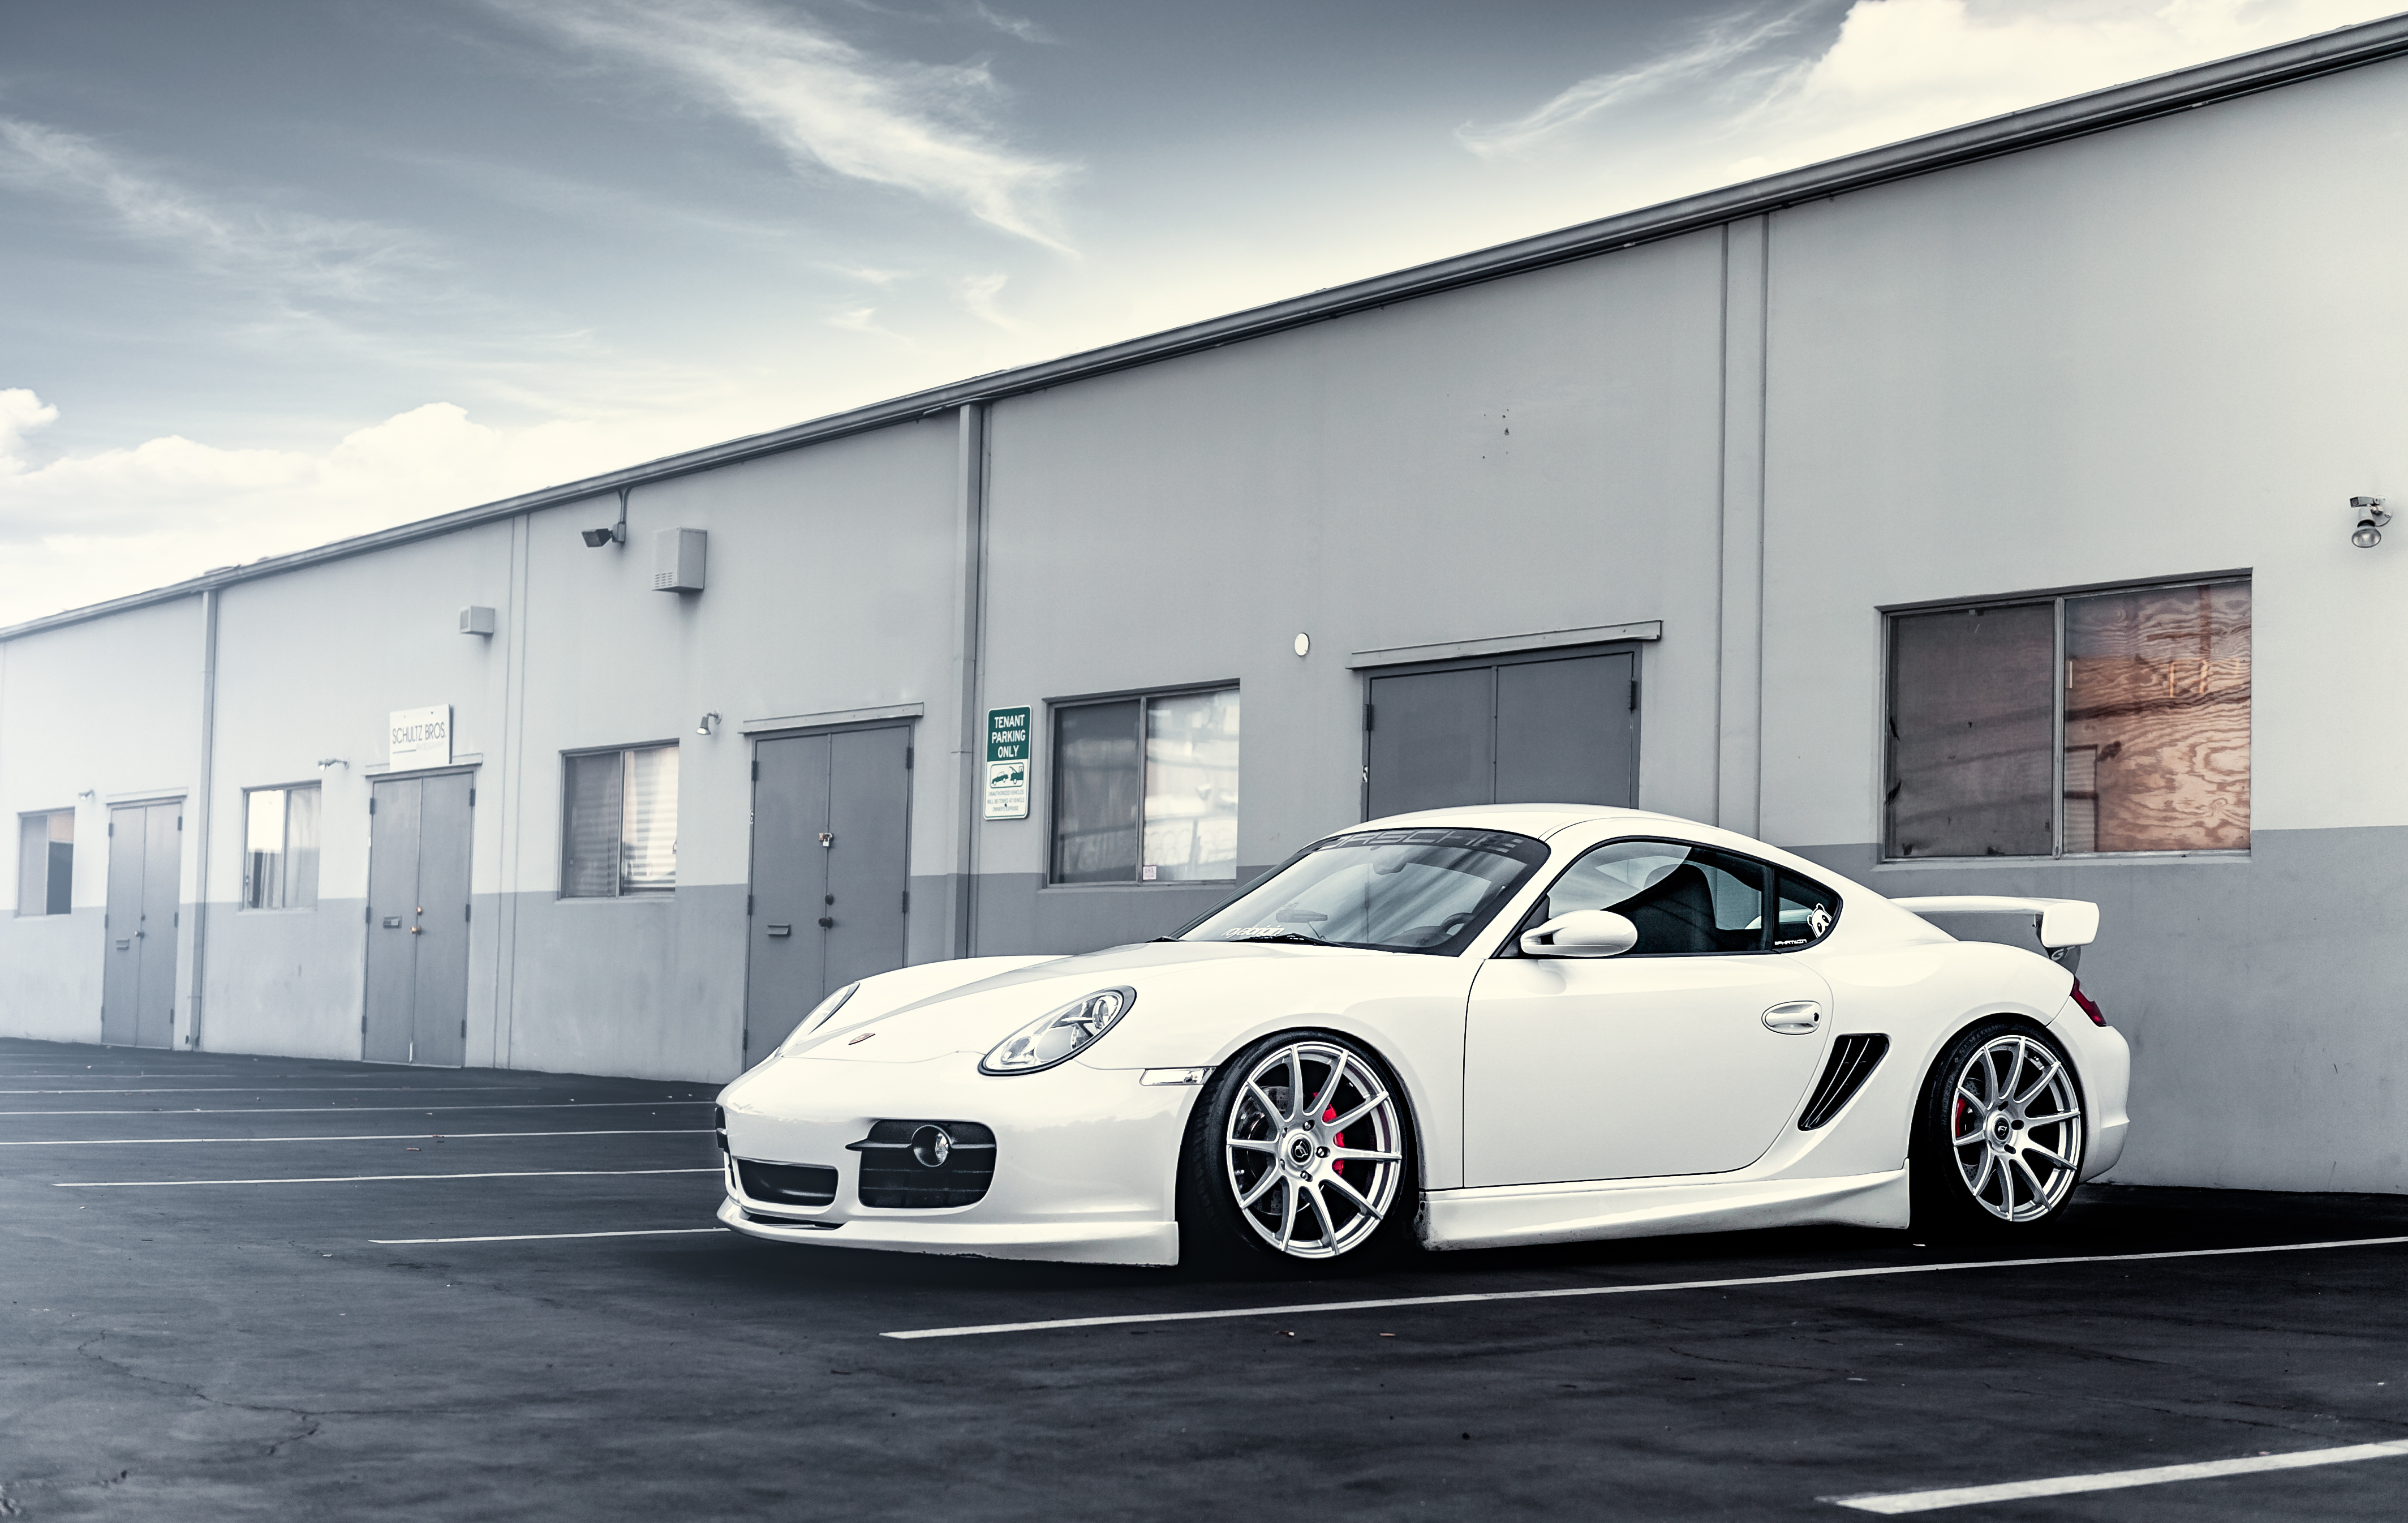 108593 download wallpaper Porsche, Cars, Disks, Drives screensavers and pictures for free